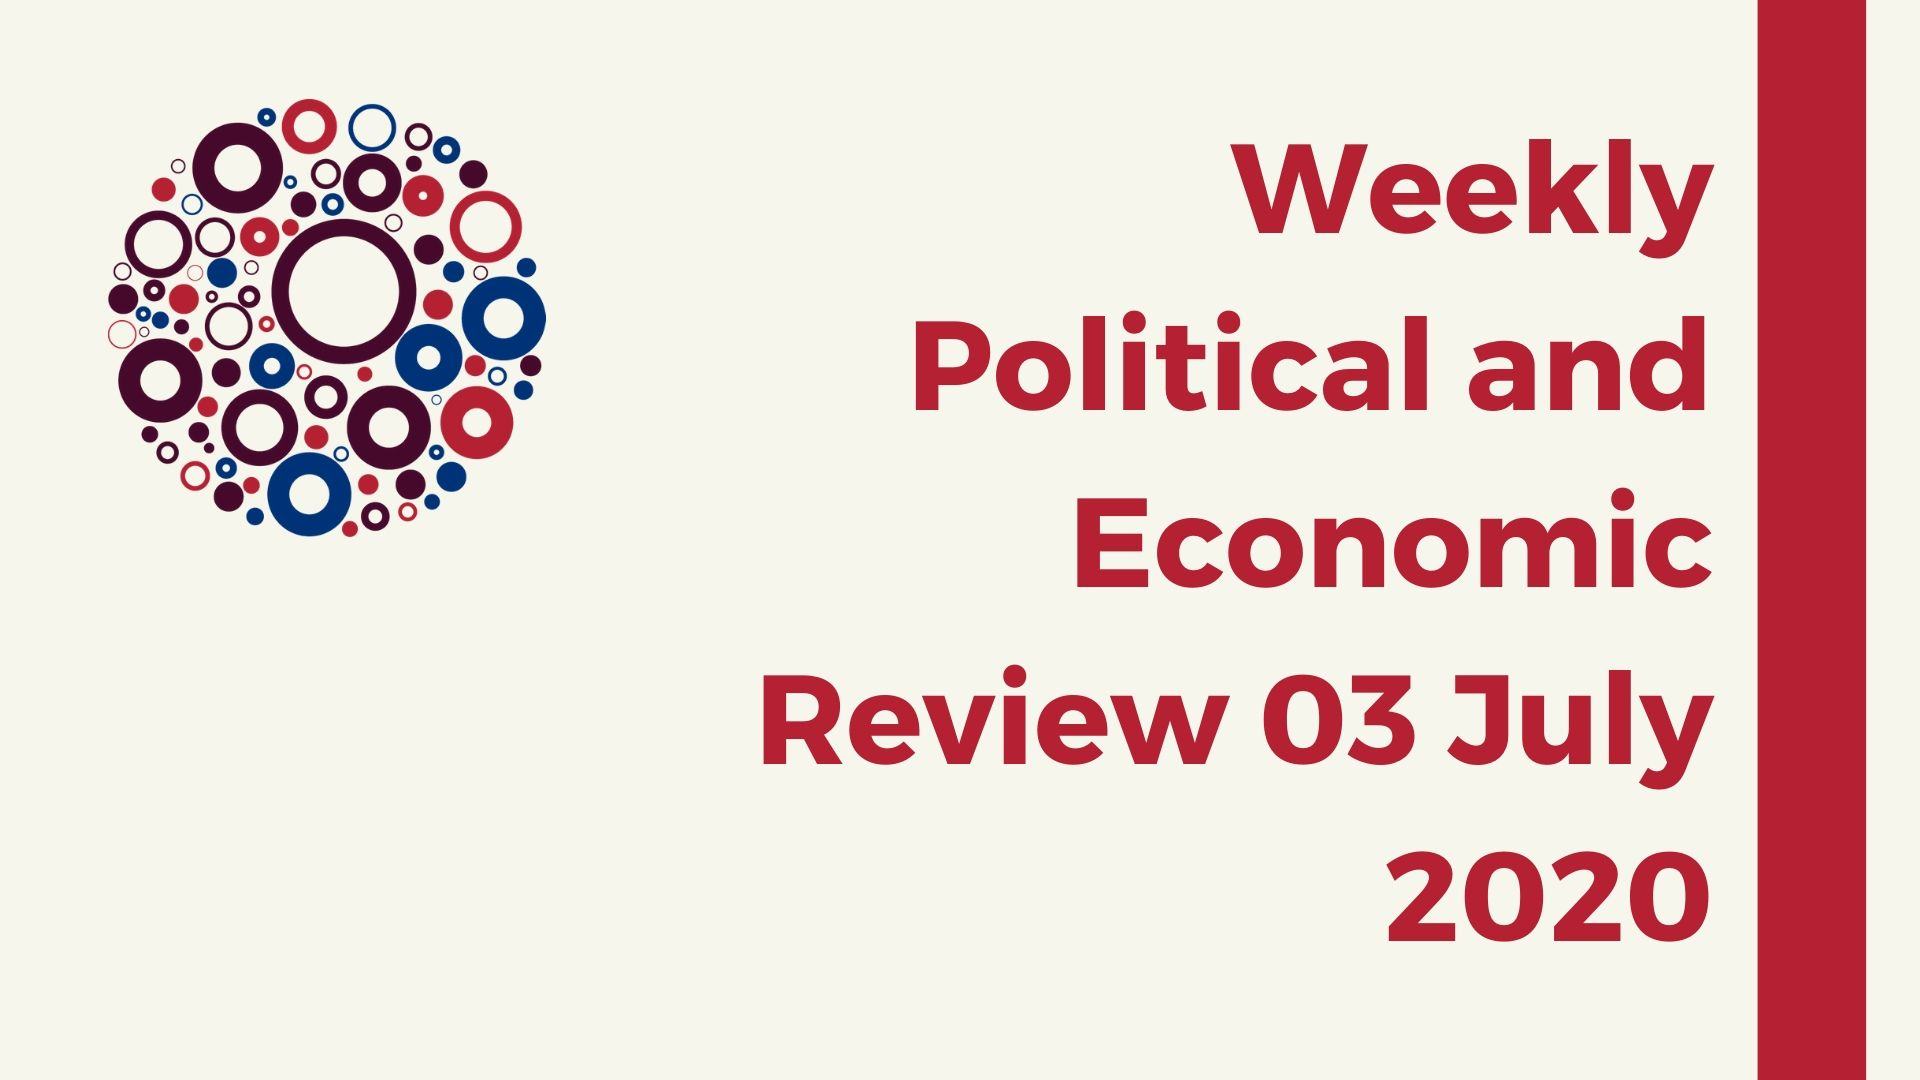 Weekly Political and Economic Review 03 July 2020